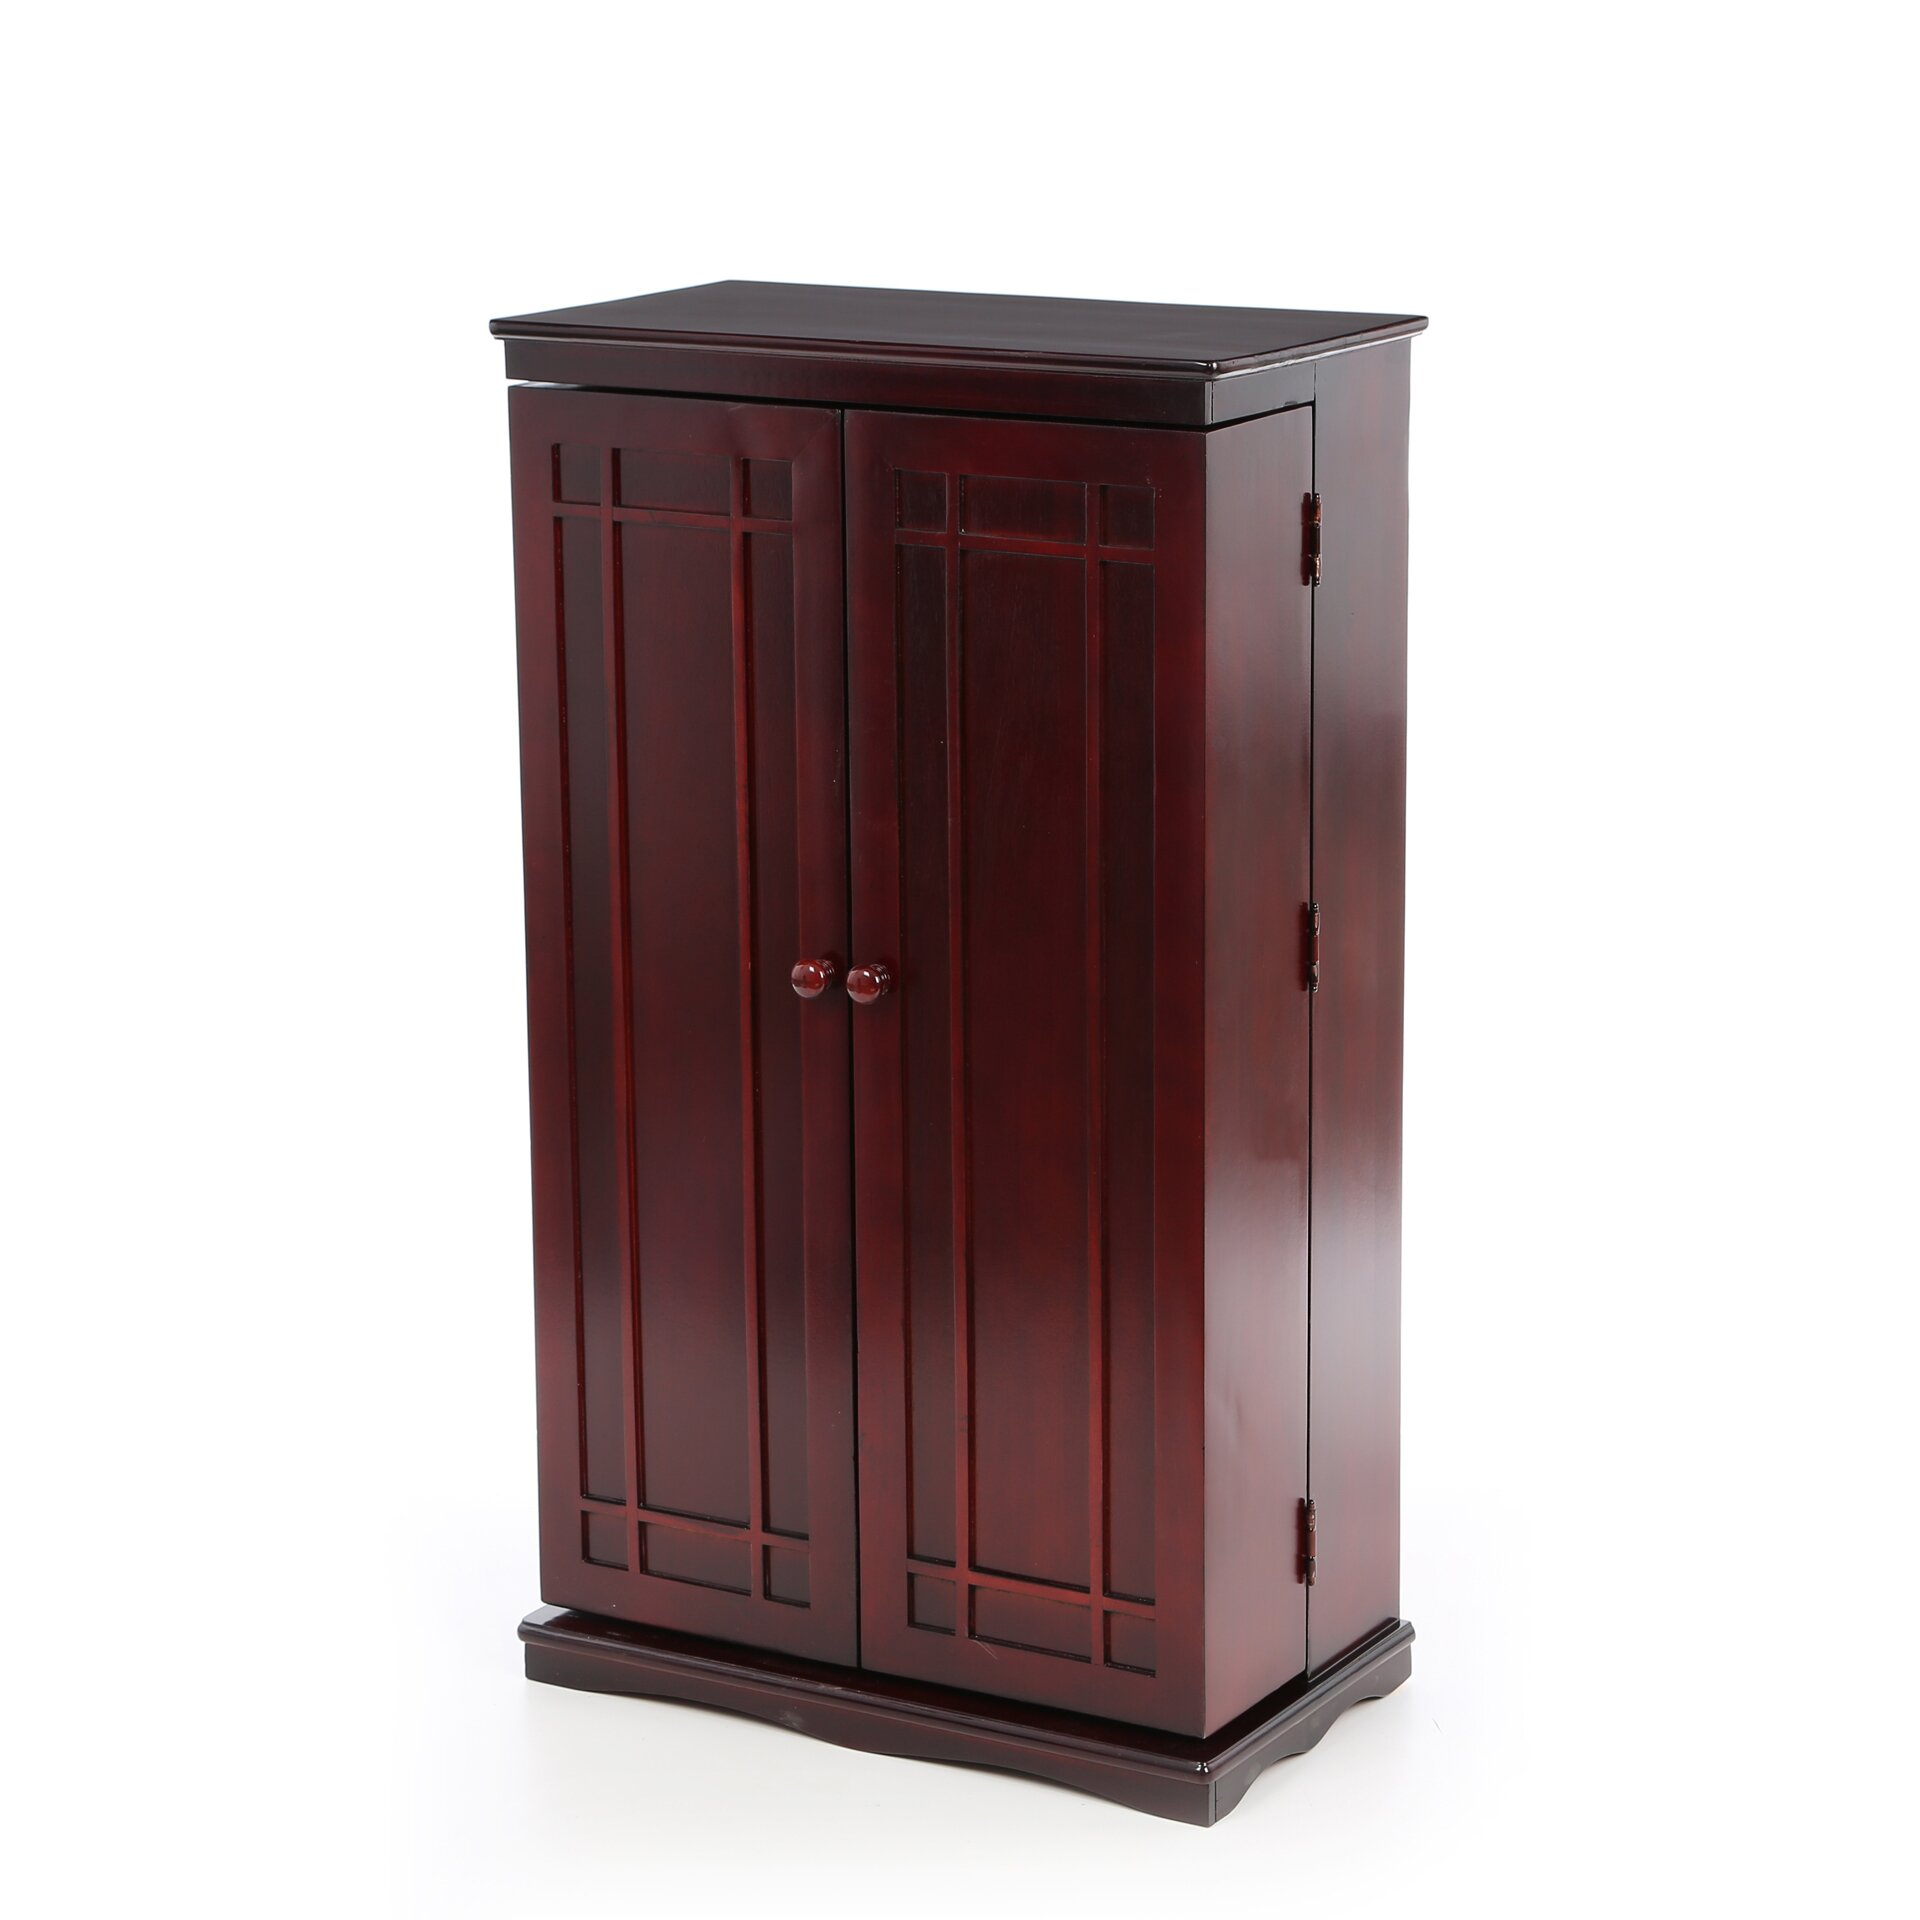 Darby home co mitchell multimedia storage cabinet reviews wayfair - Kabinet multimedia ...